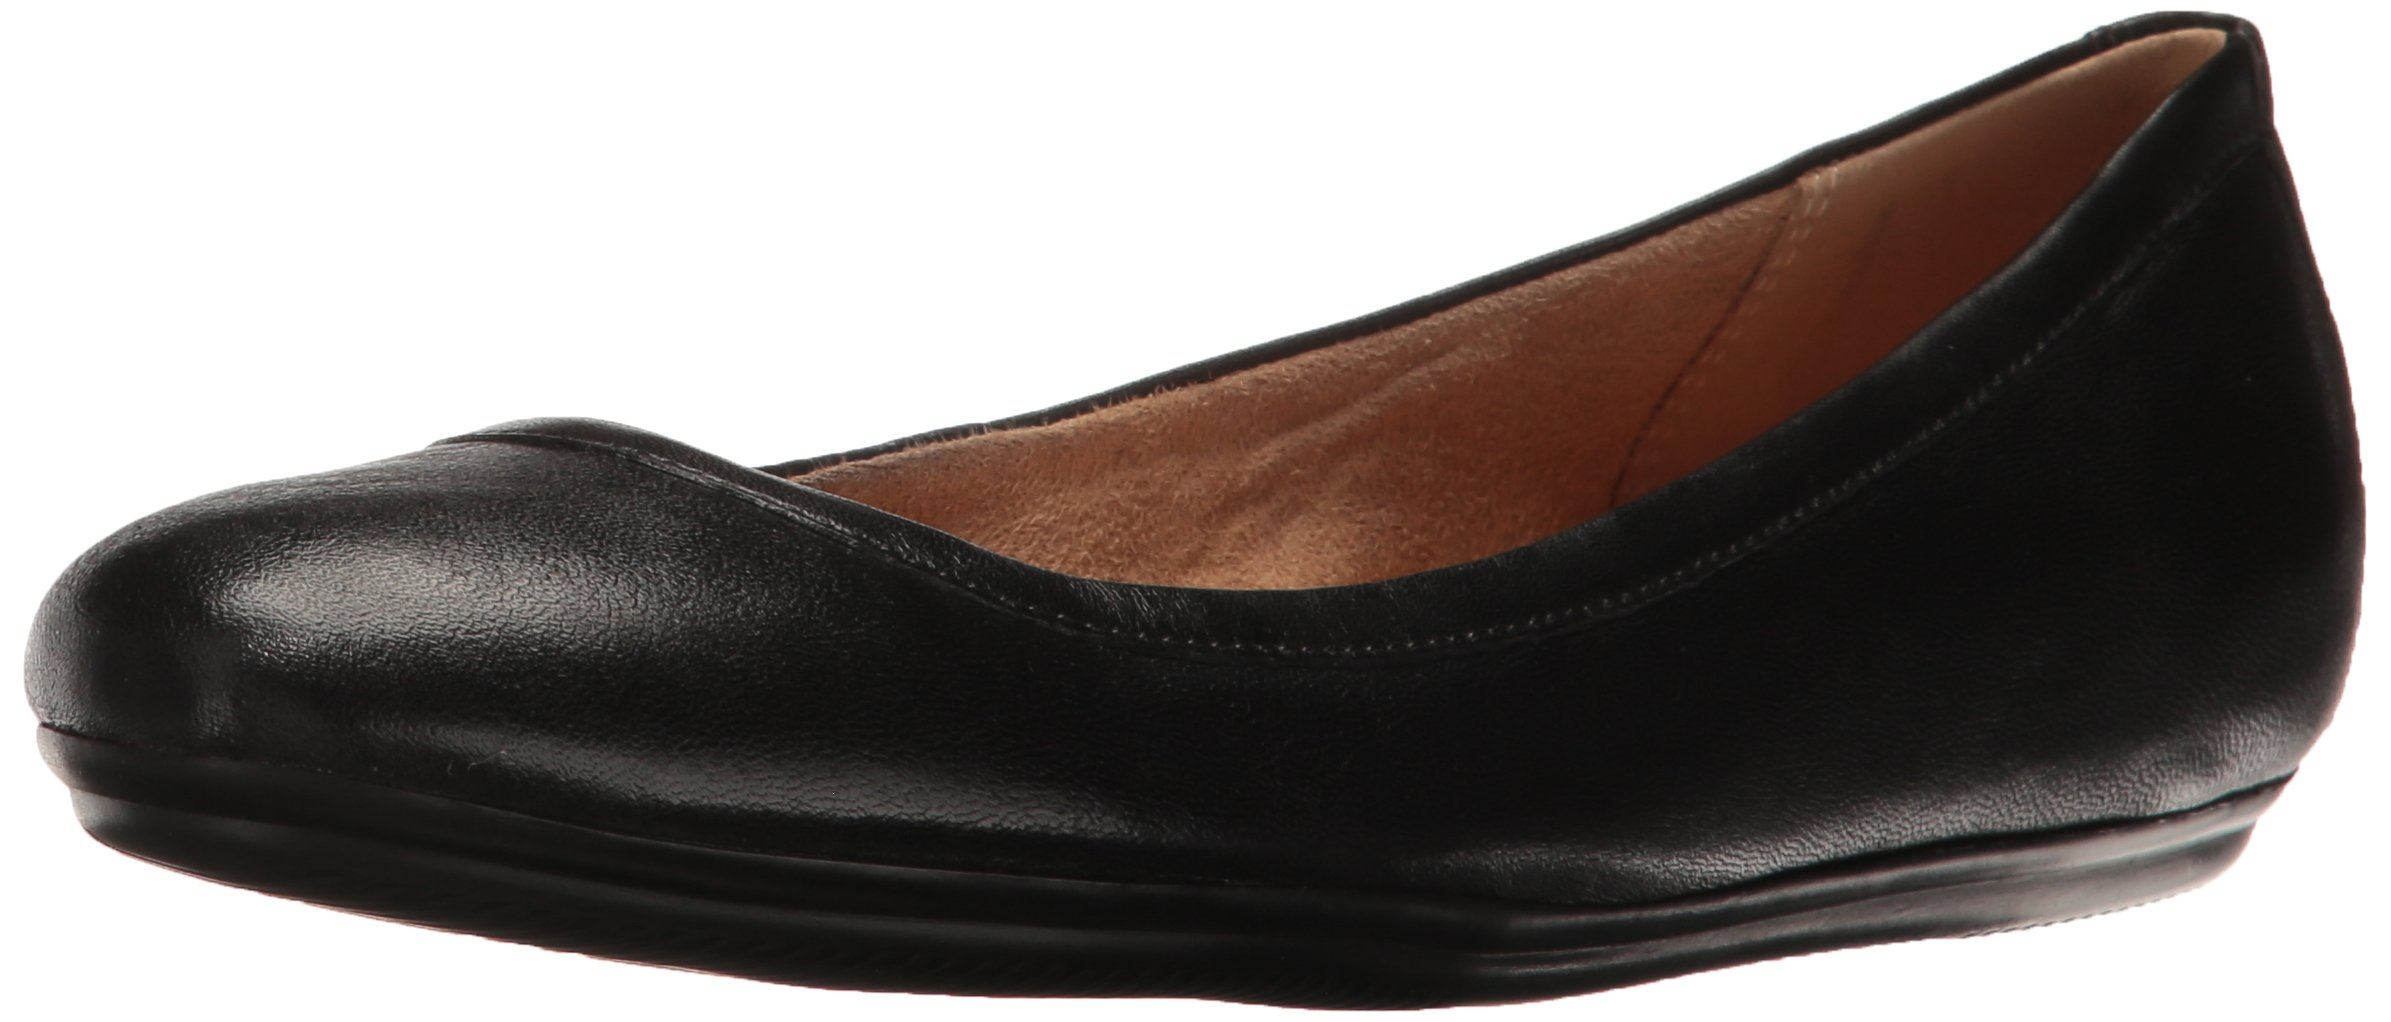 Naturalizer Women's Brittany Ballet Flat, Black, 8.5 M US